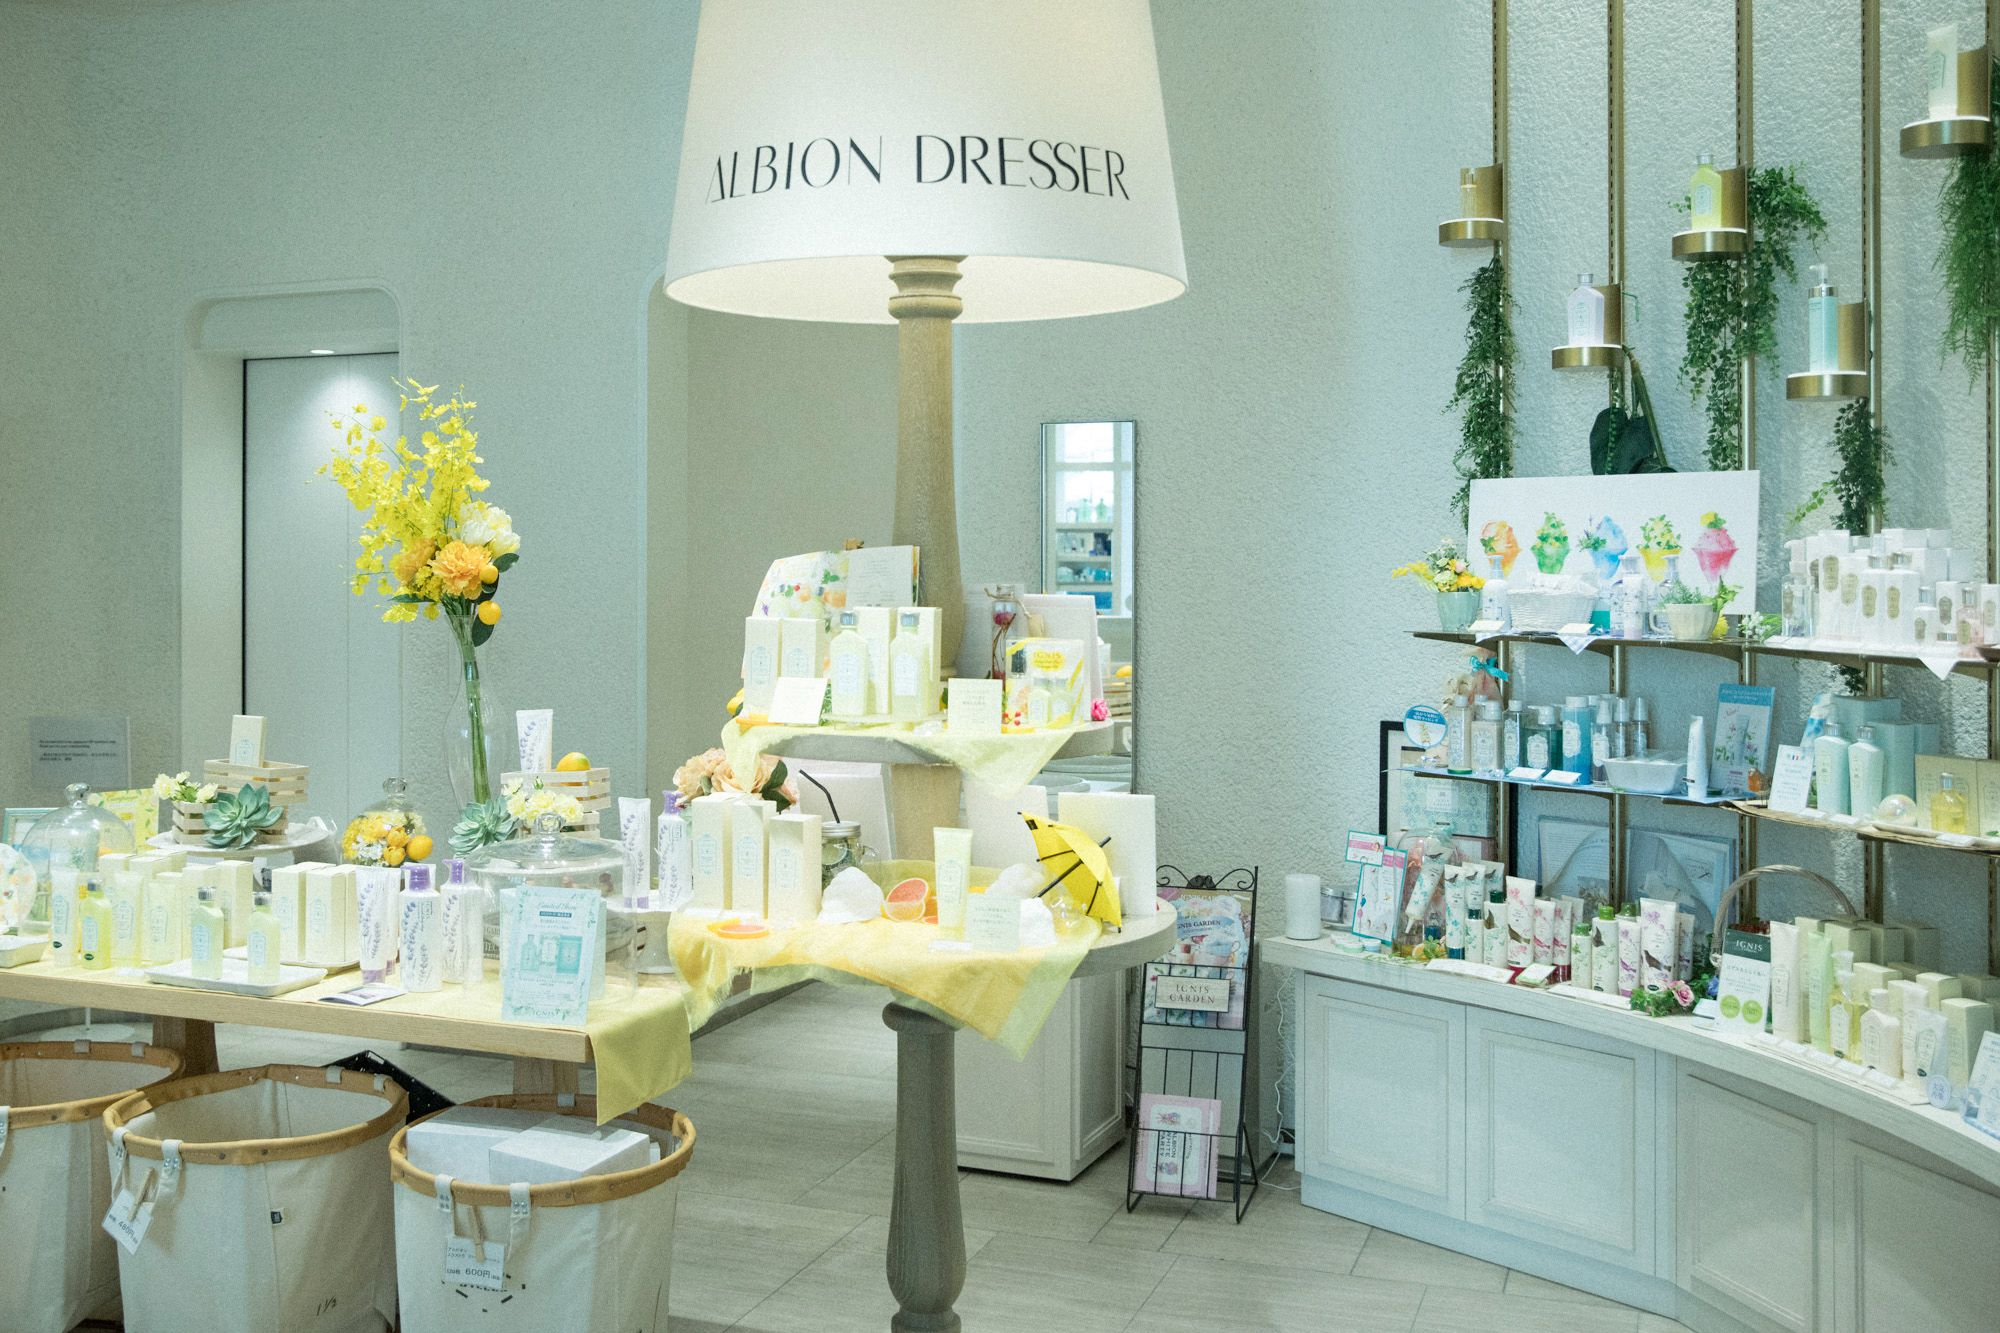 """""""ALBION DRESSER Ginza Store"""" displays their recommended products that are perfect for the season."""